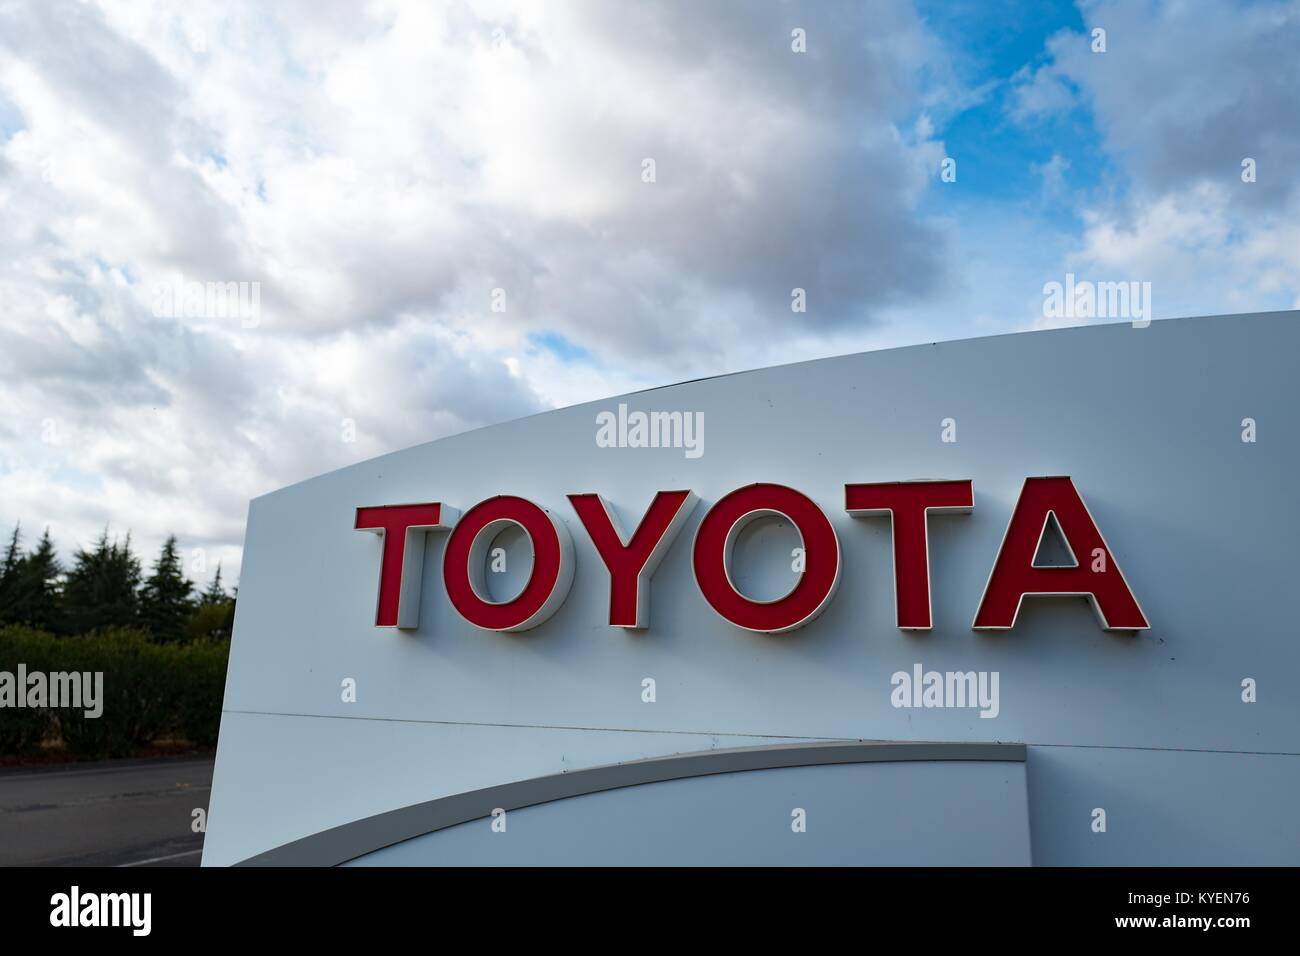 the athelred world company in toyota tsusho com wikipedia wikiwand clients center building